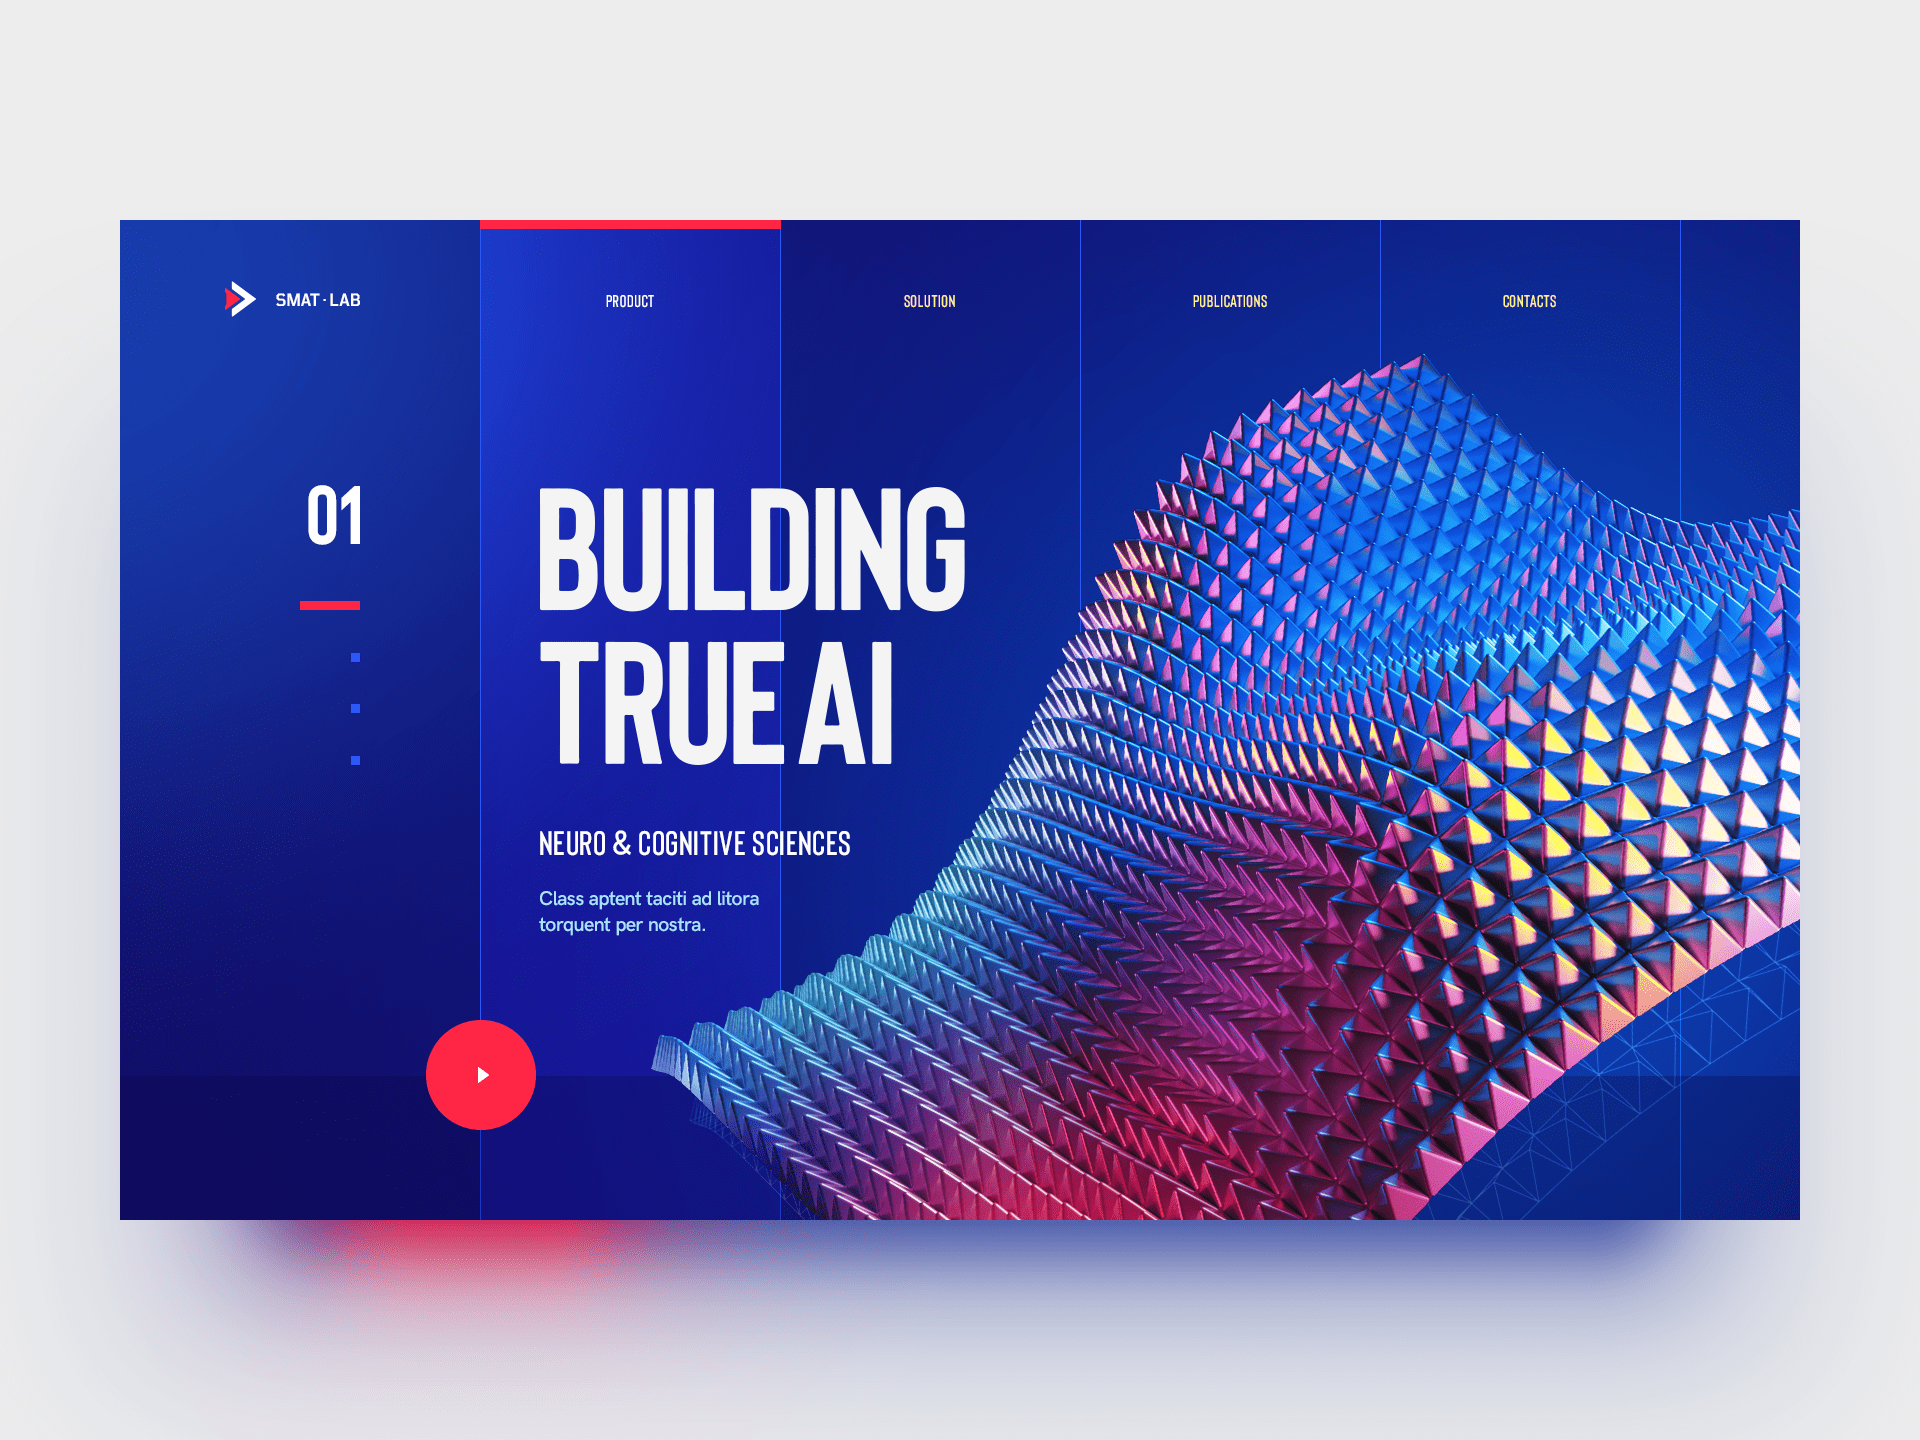 SMAT Lab by Mike   Creative Mints